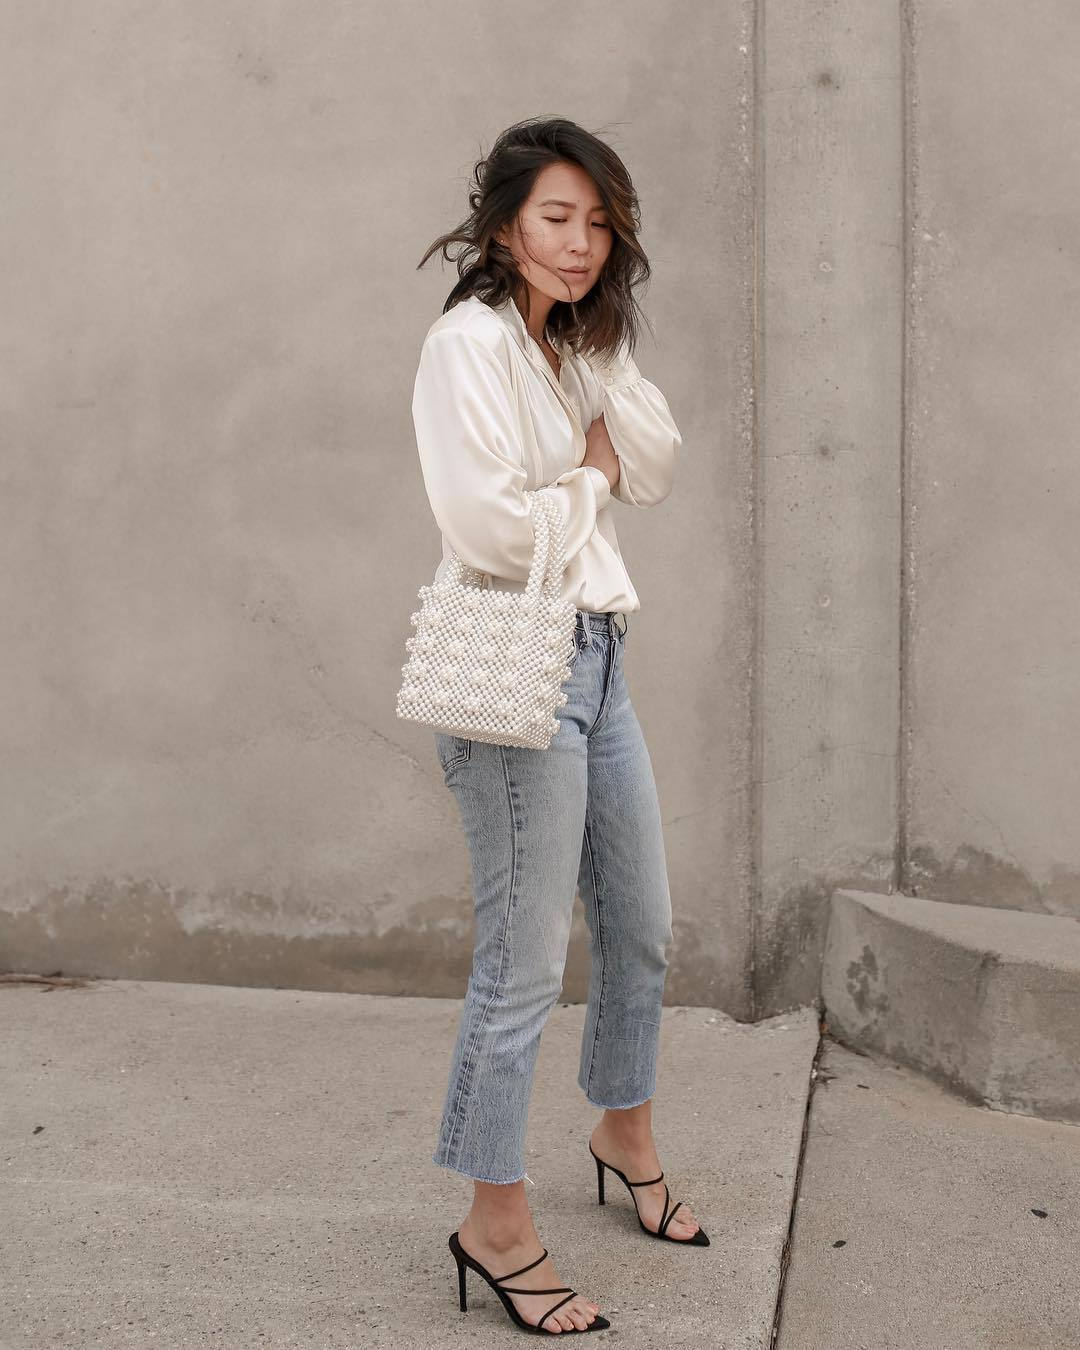 bag white bag beaded handbag black sandals levi's high waisted jeans cropped jeans straight jeans white blouse